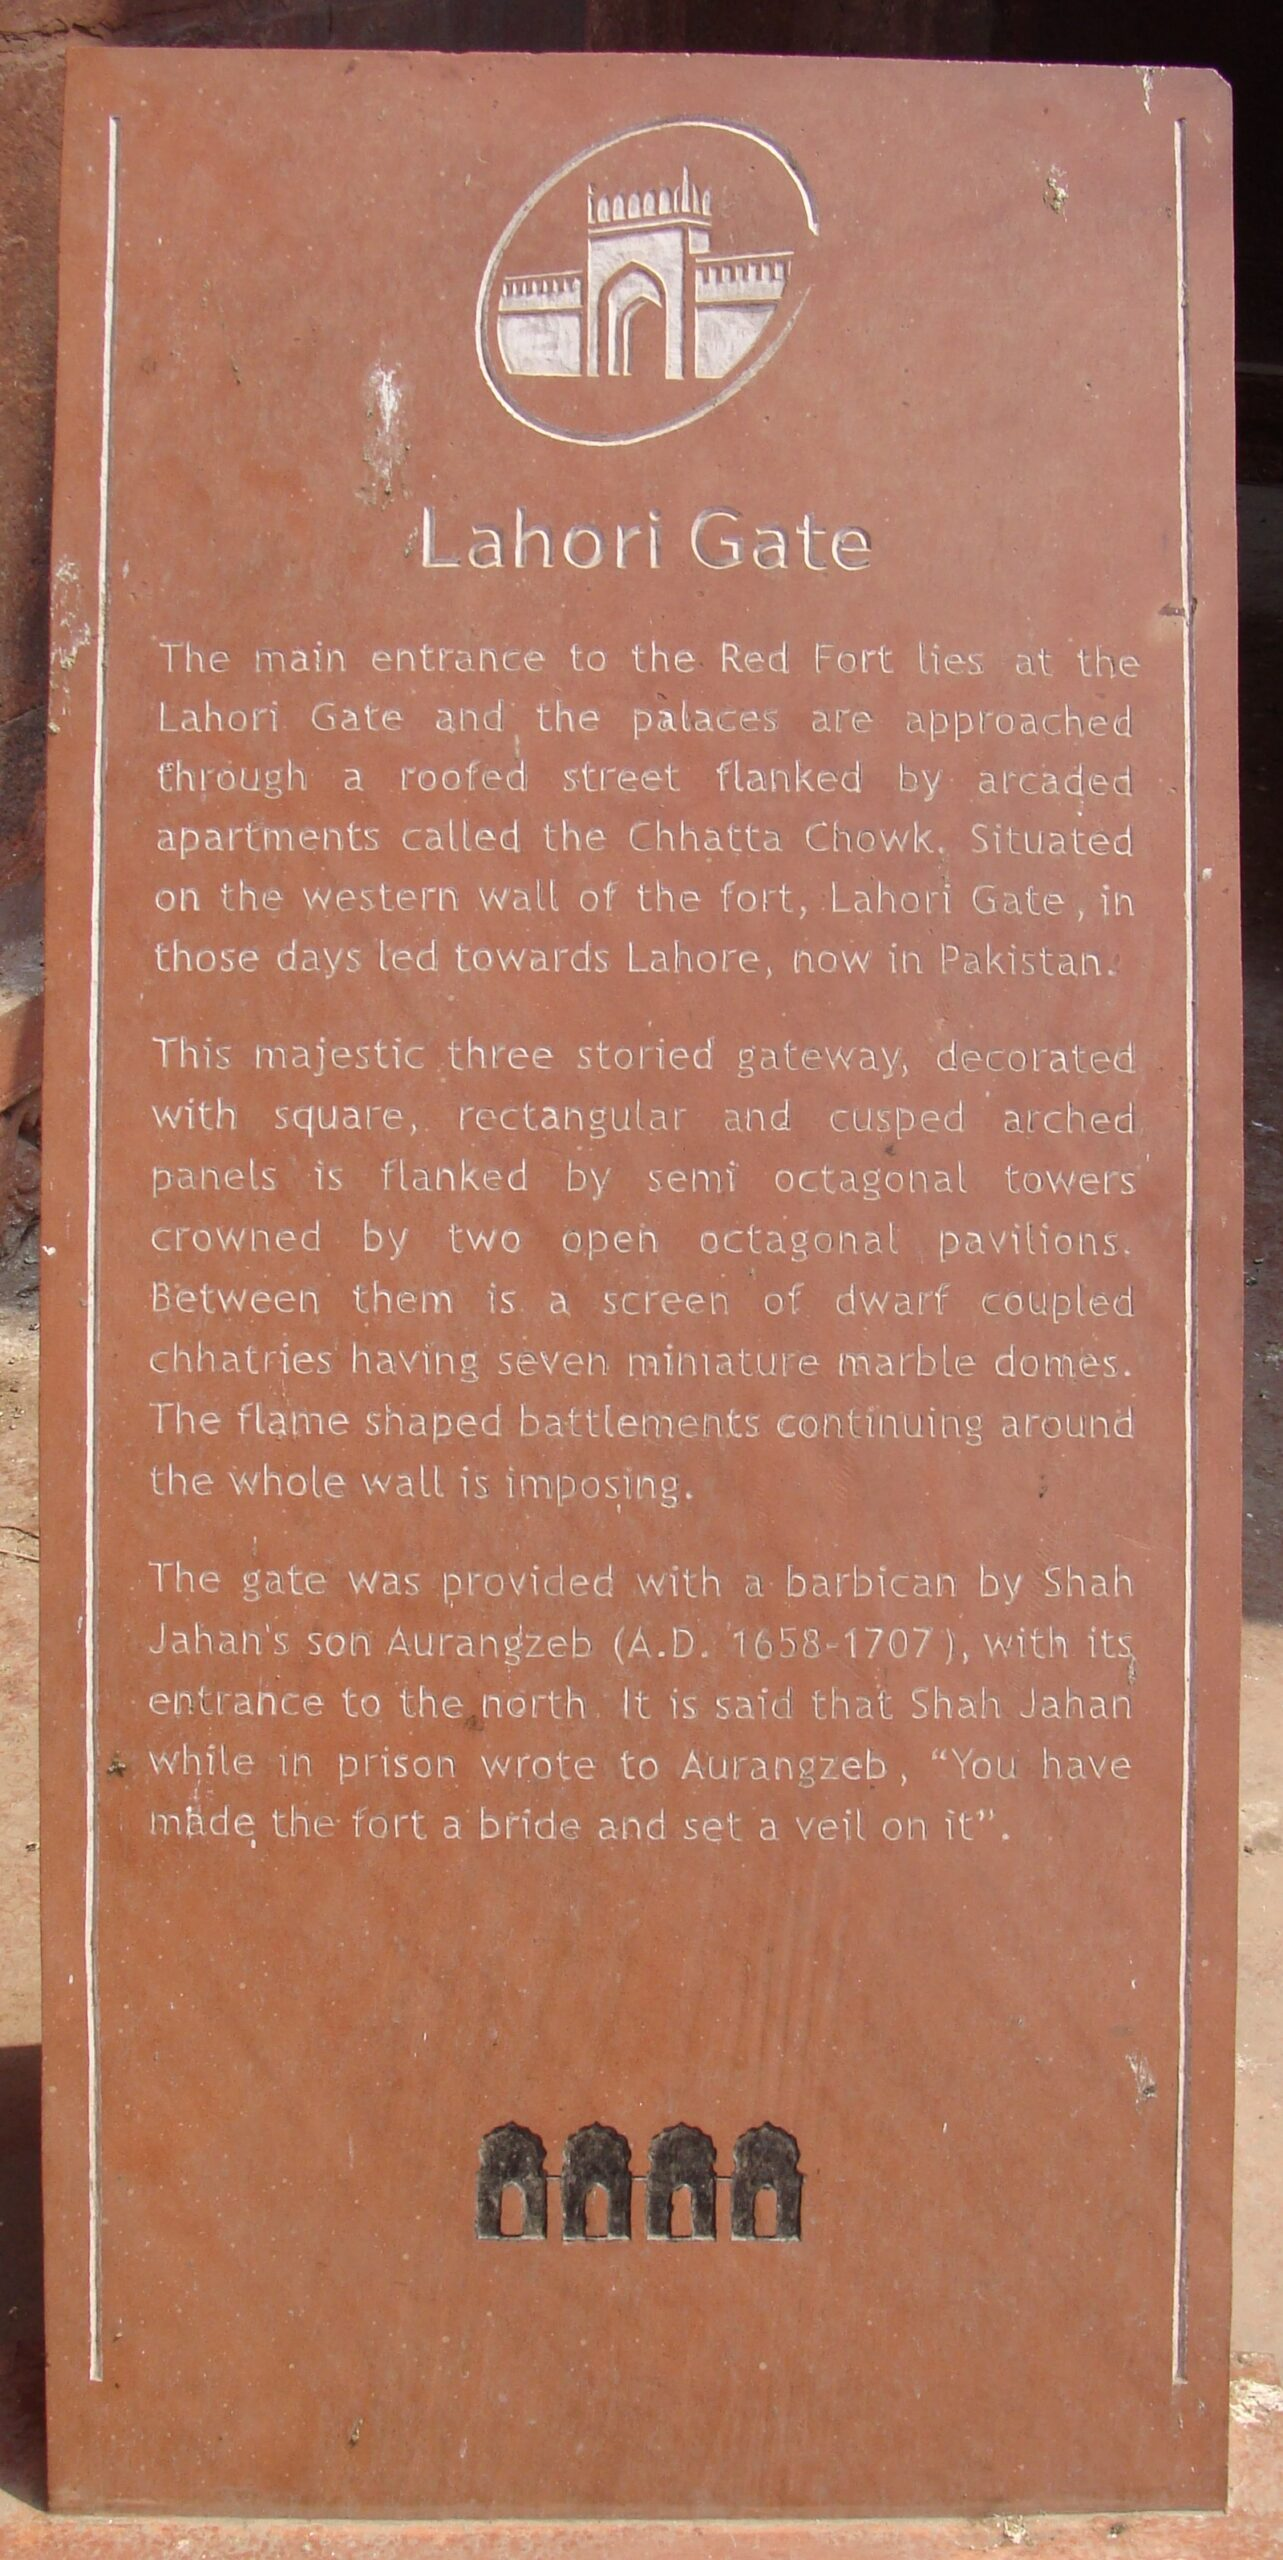 About Lahori Gate (Red Fort, Old Delhi, India)